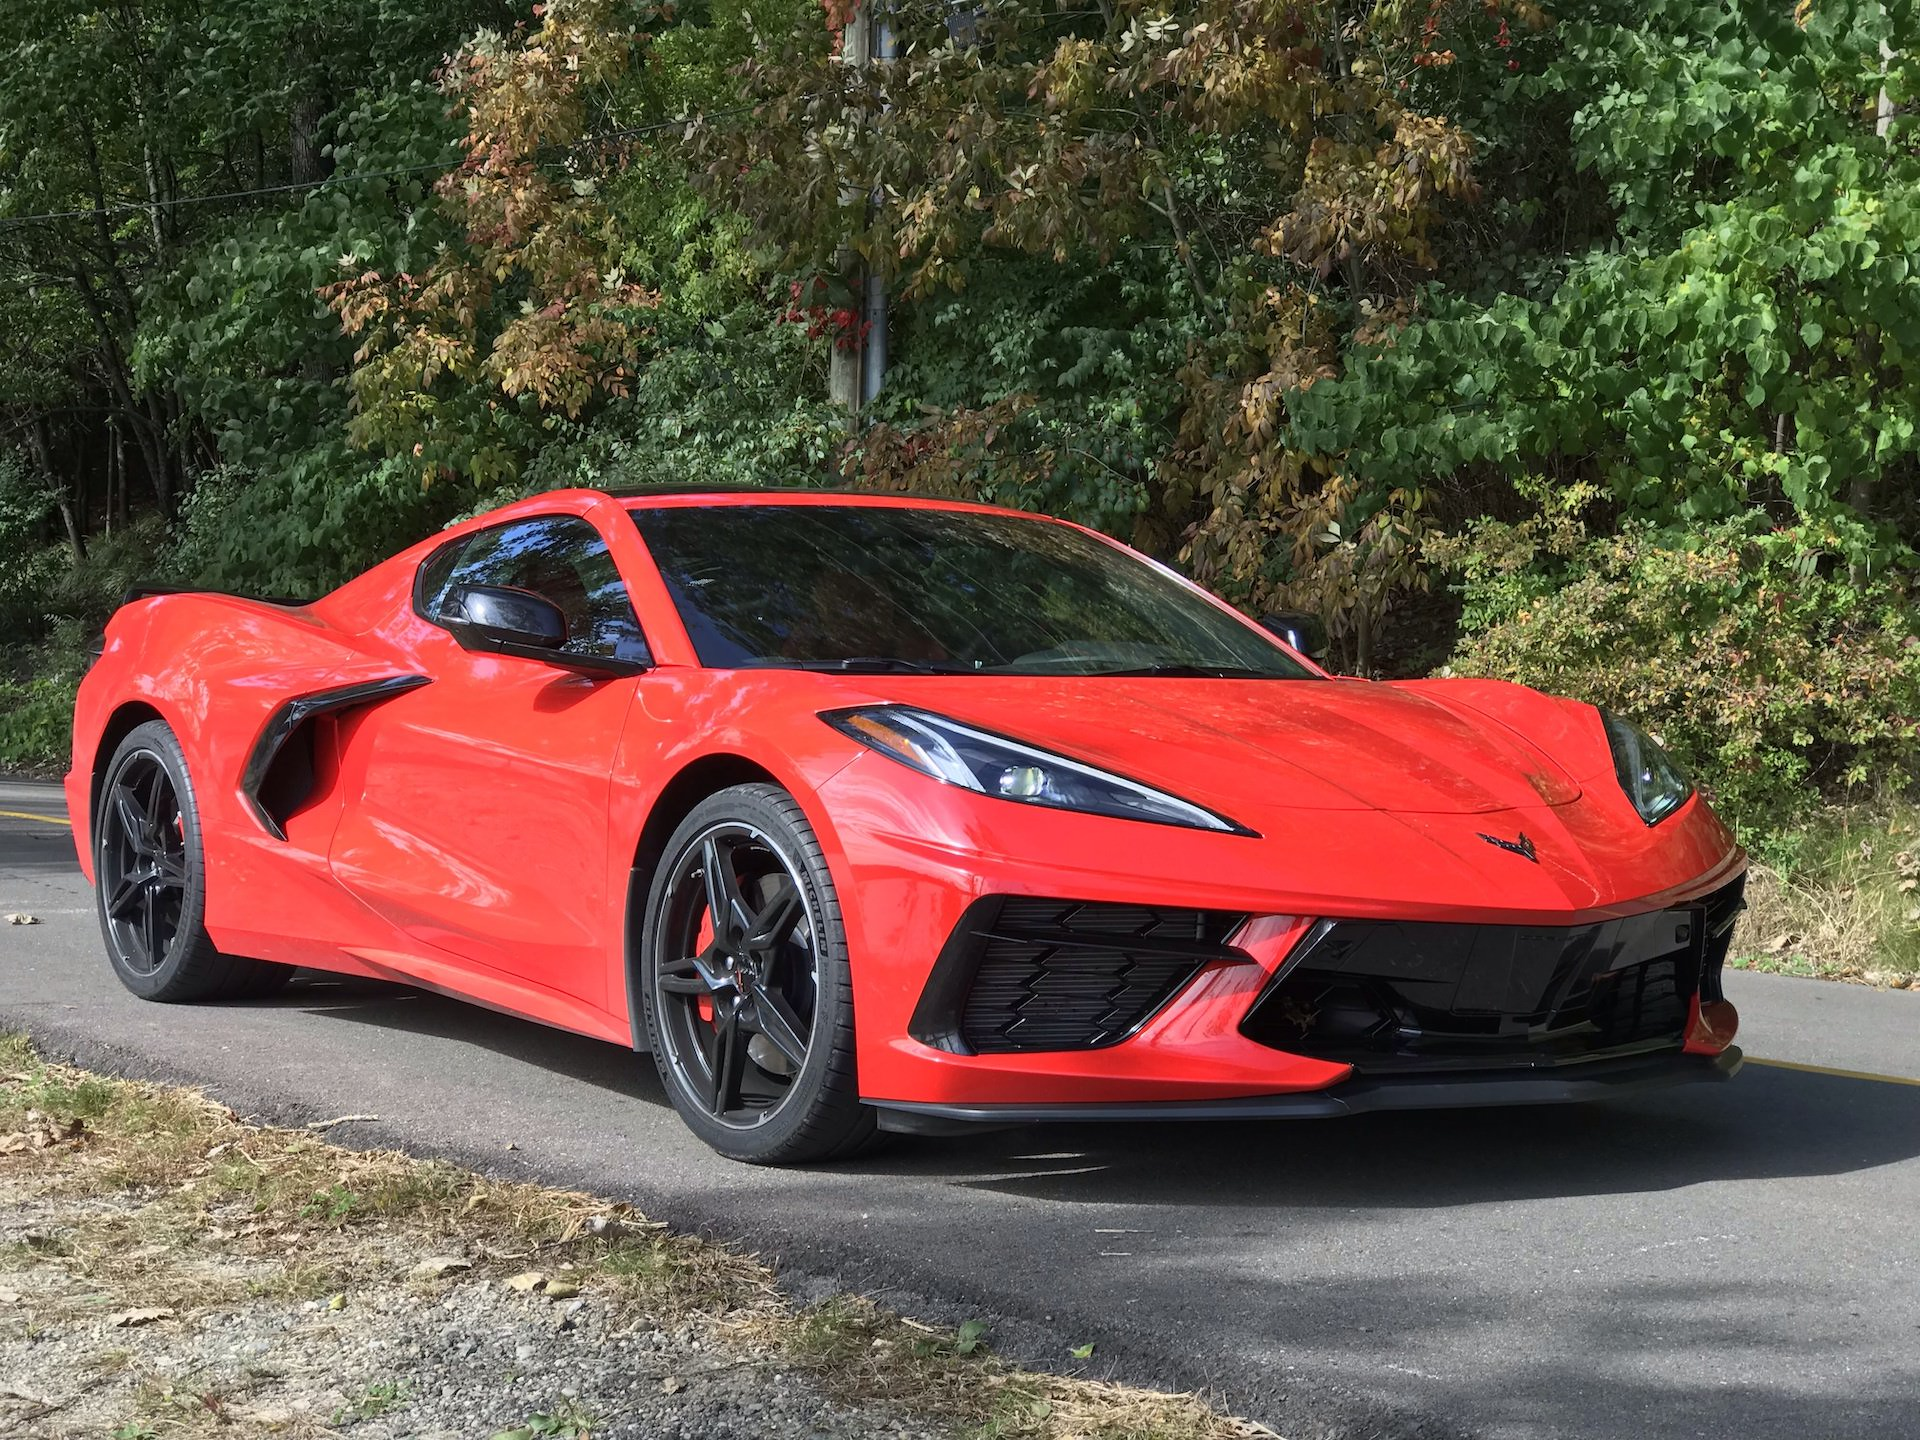 2020 chevy corvette review  2021 genesis gv60 spy shots  2019 subaru wrx sti s209 pricing  car